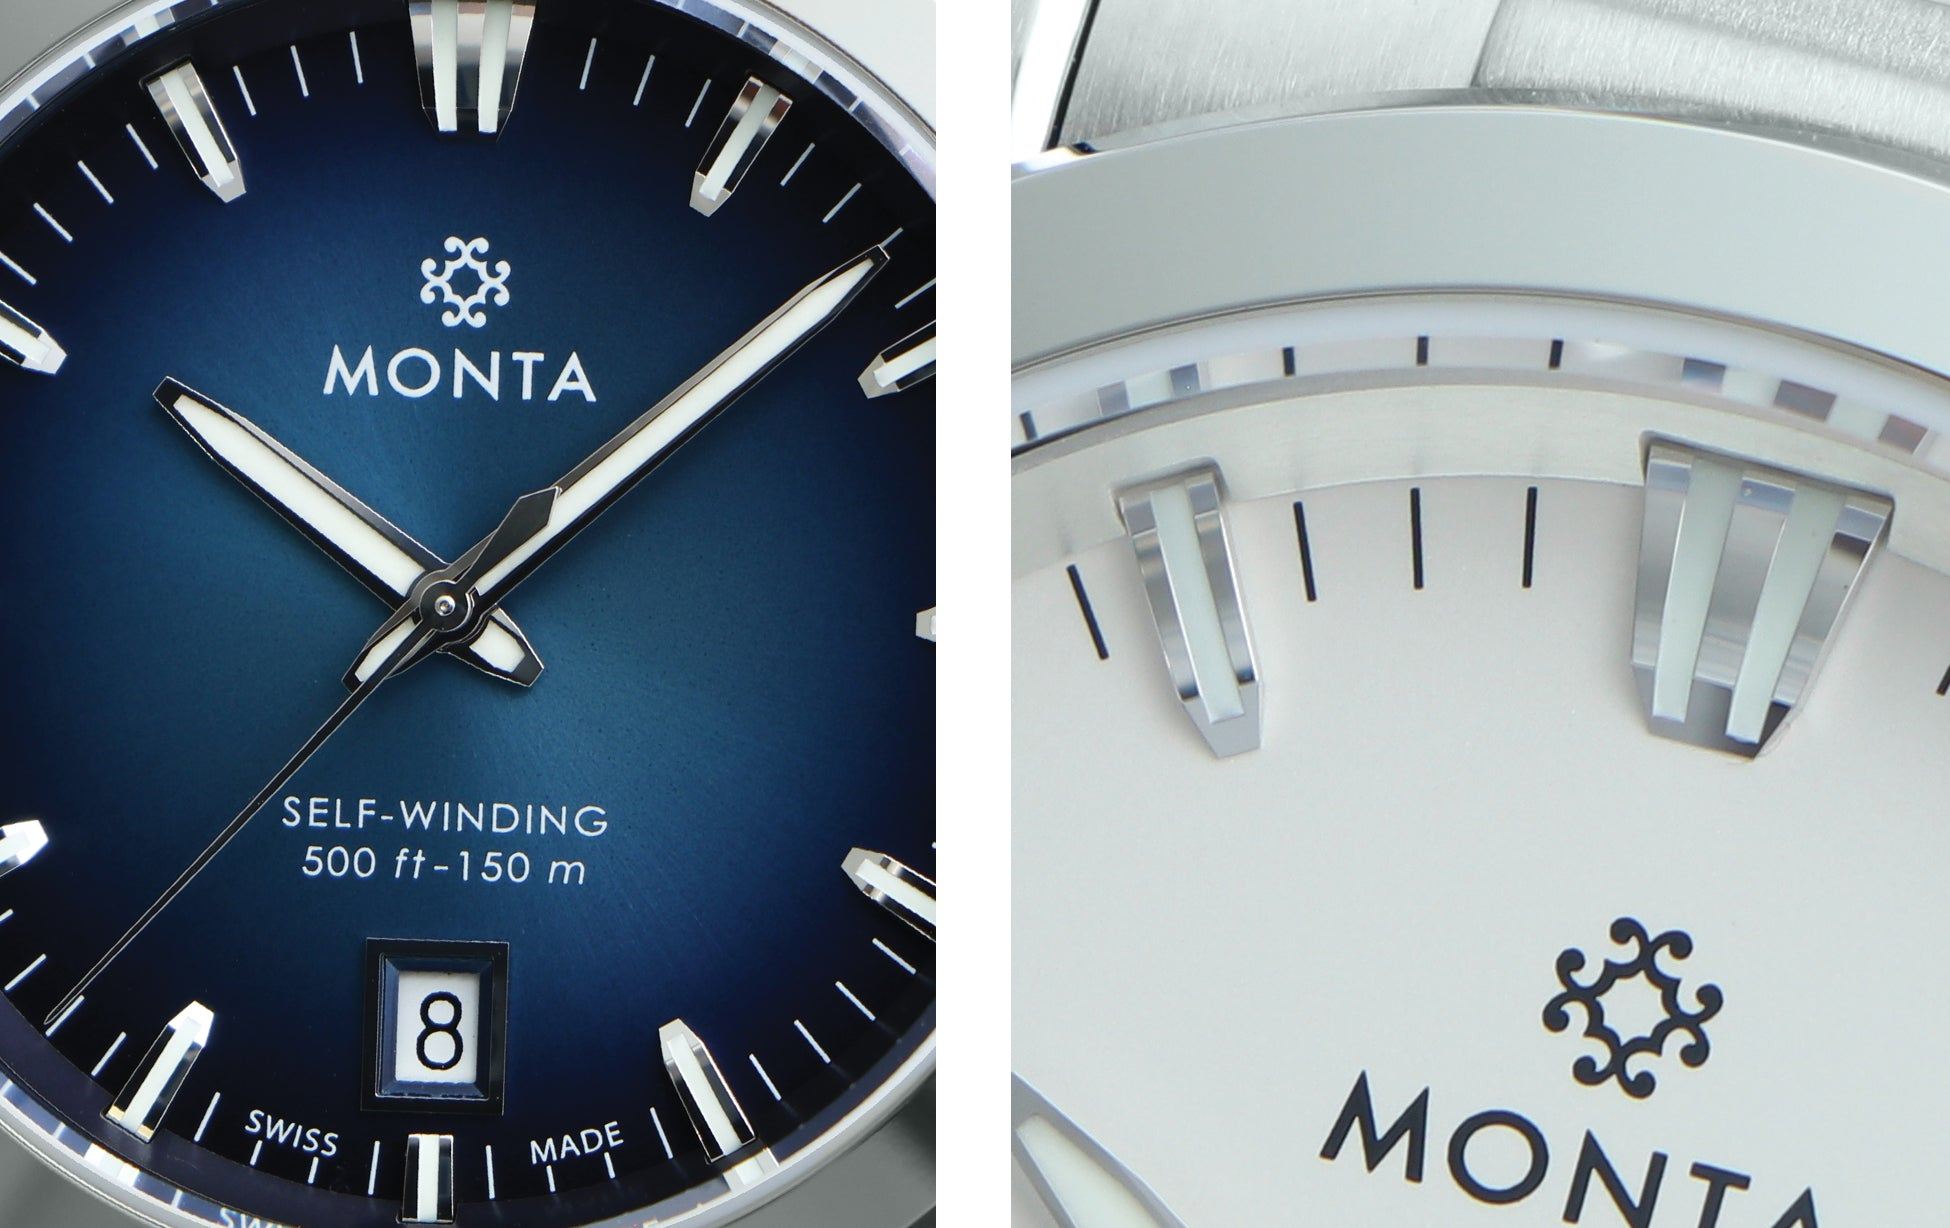 MONTA Noble hands and logo